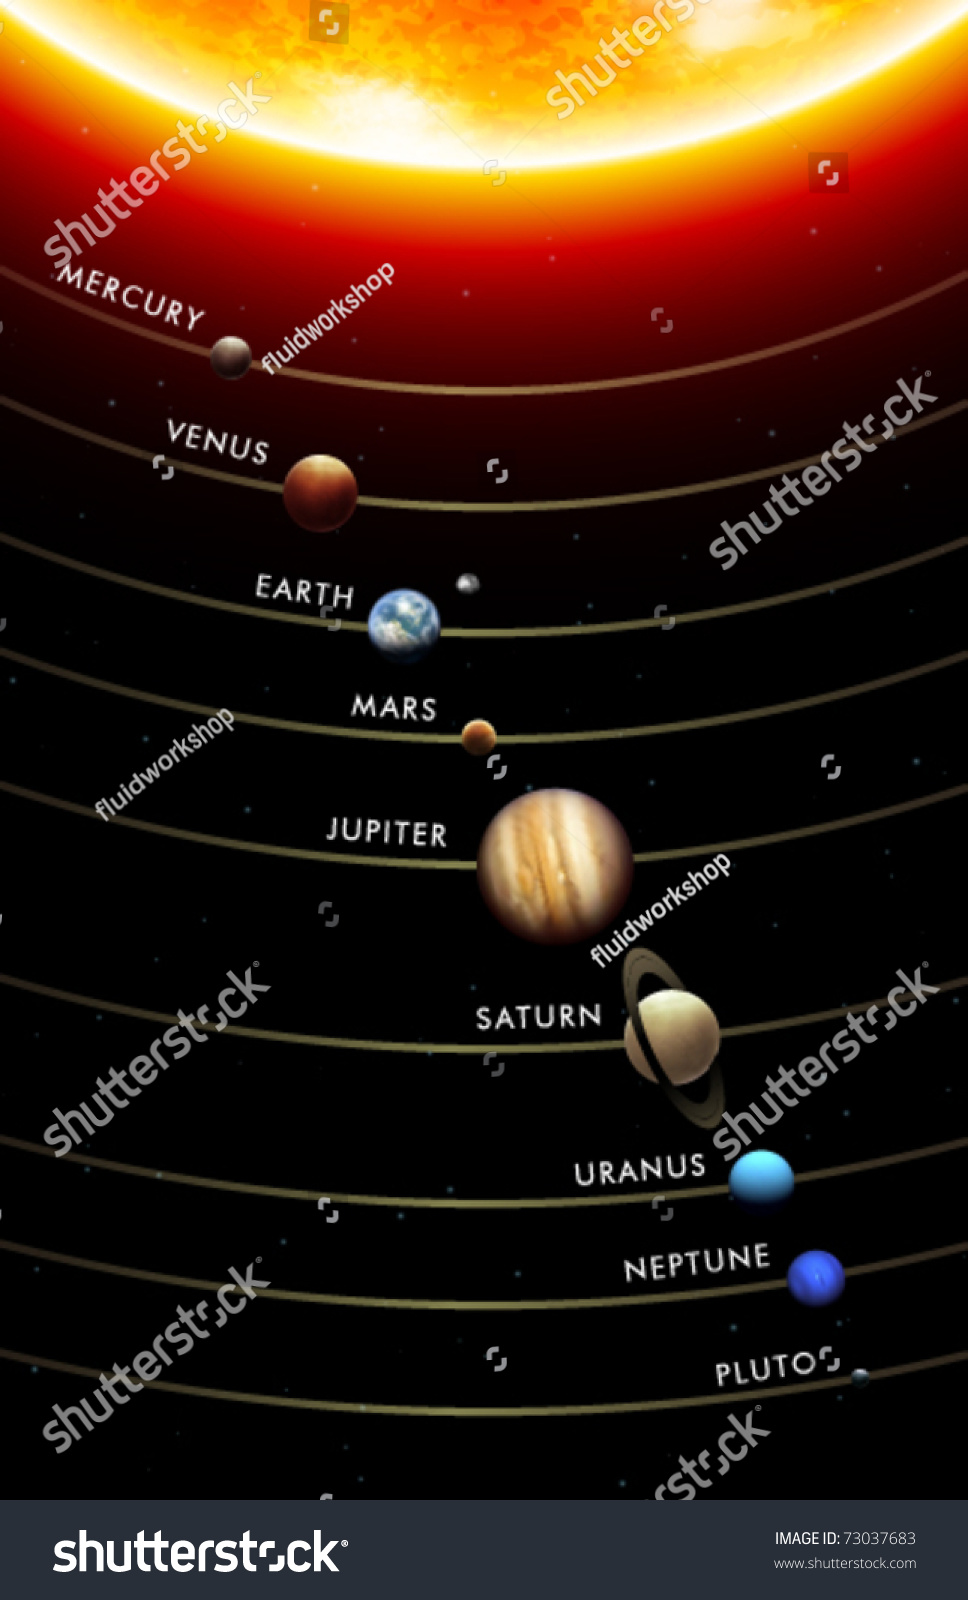 solar system poster vertical - photo #28